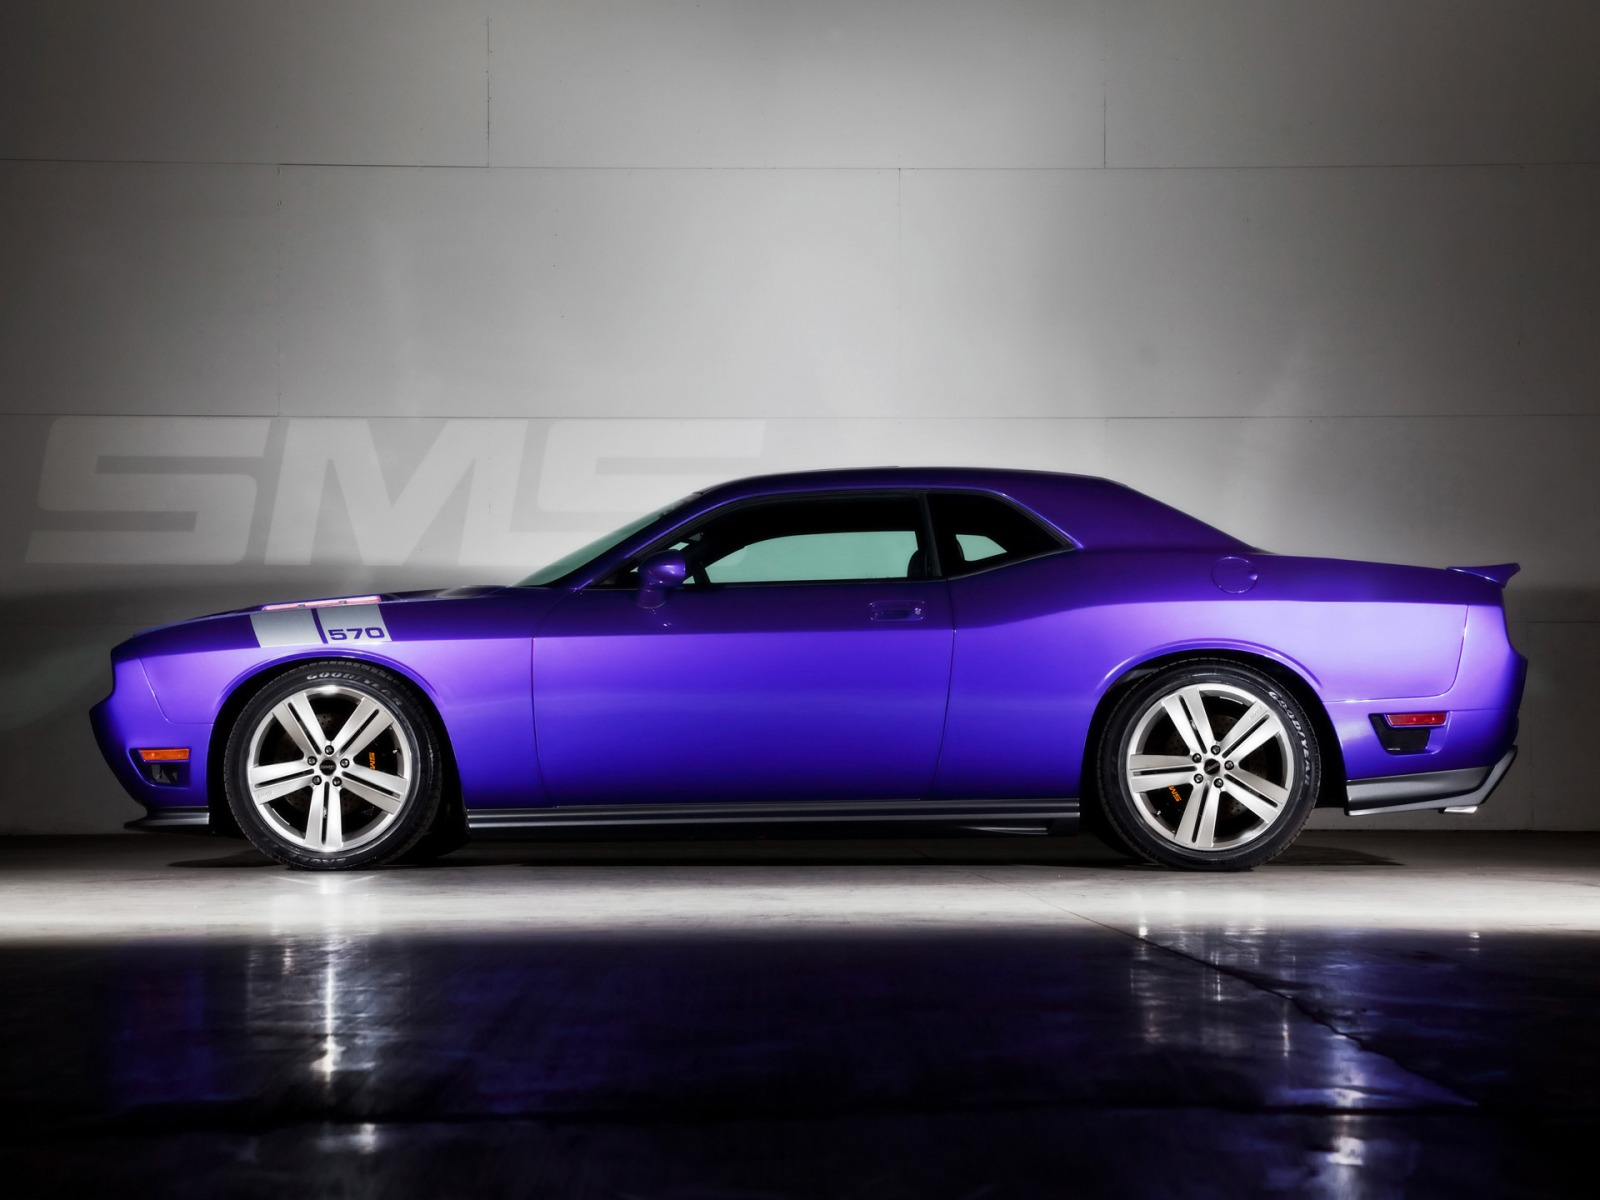 Dodge Challenger Wallpaper 5095 Hd Wallpapers in Cars   Imagescicom 1600x1200